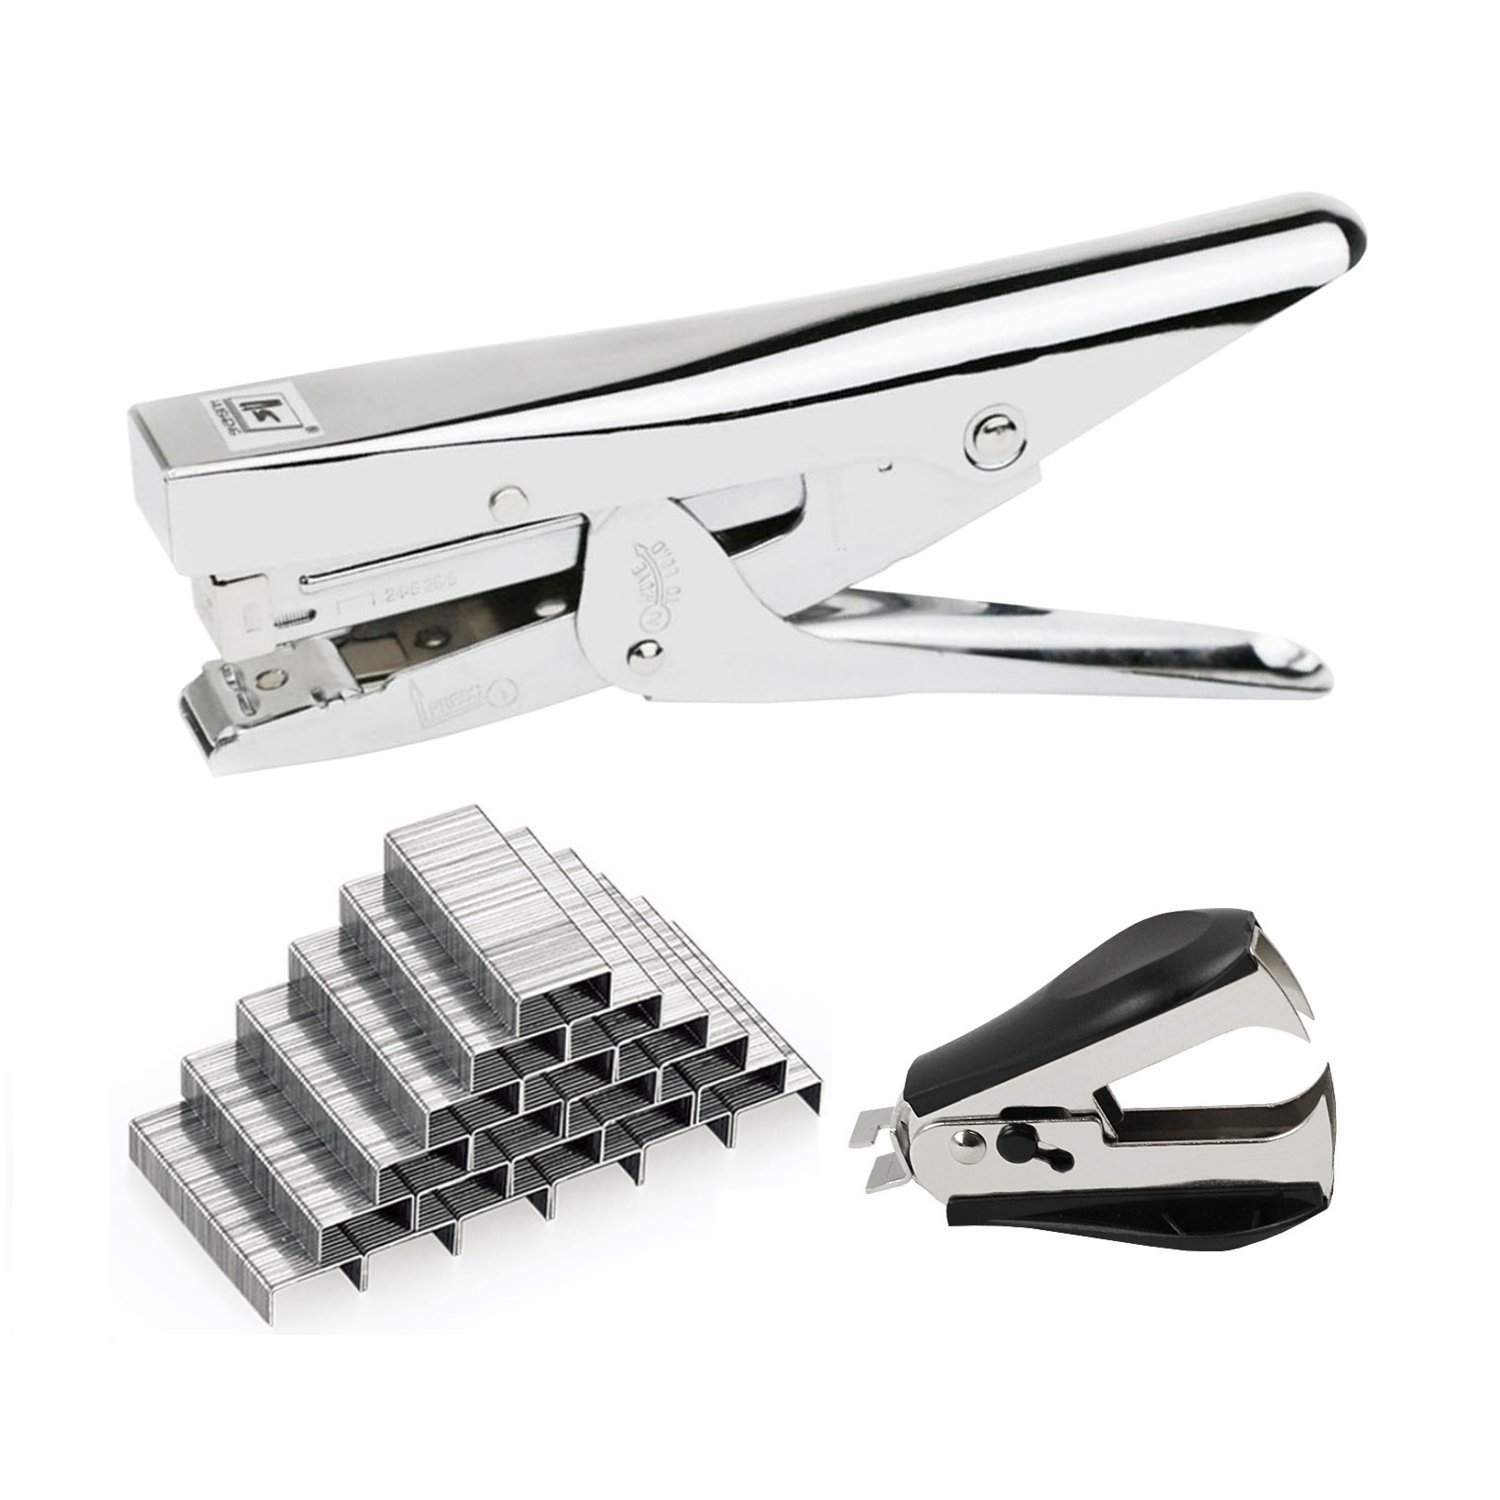 Chris.W Metal Plier Stapler with 2000Pcs 24/6 Staples and Remover Set - 20 Sheets Capacity - Full Desktop Office Size Work